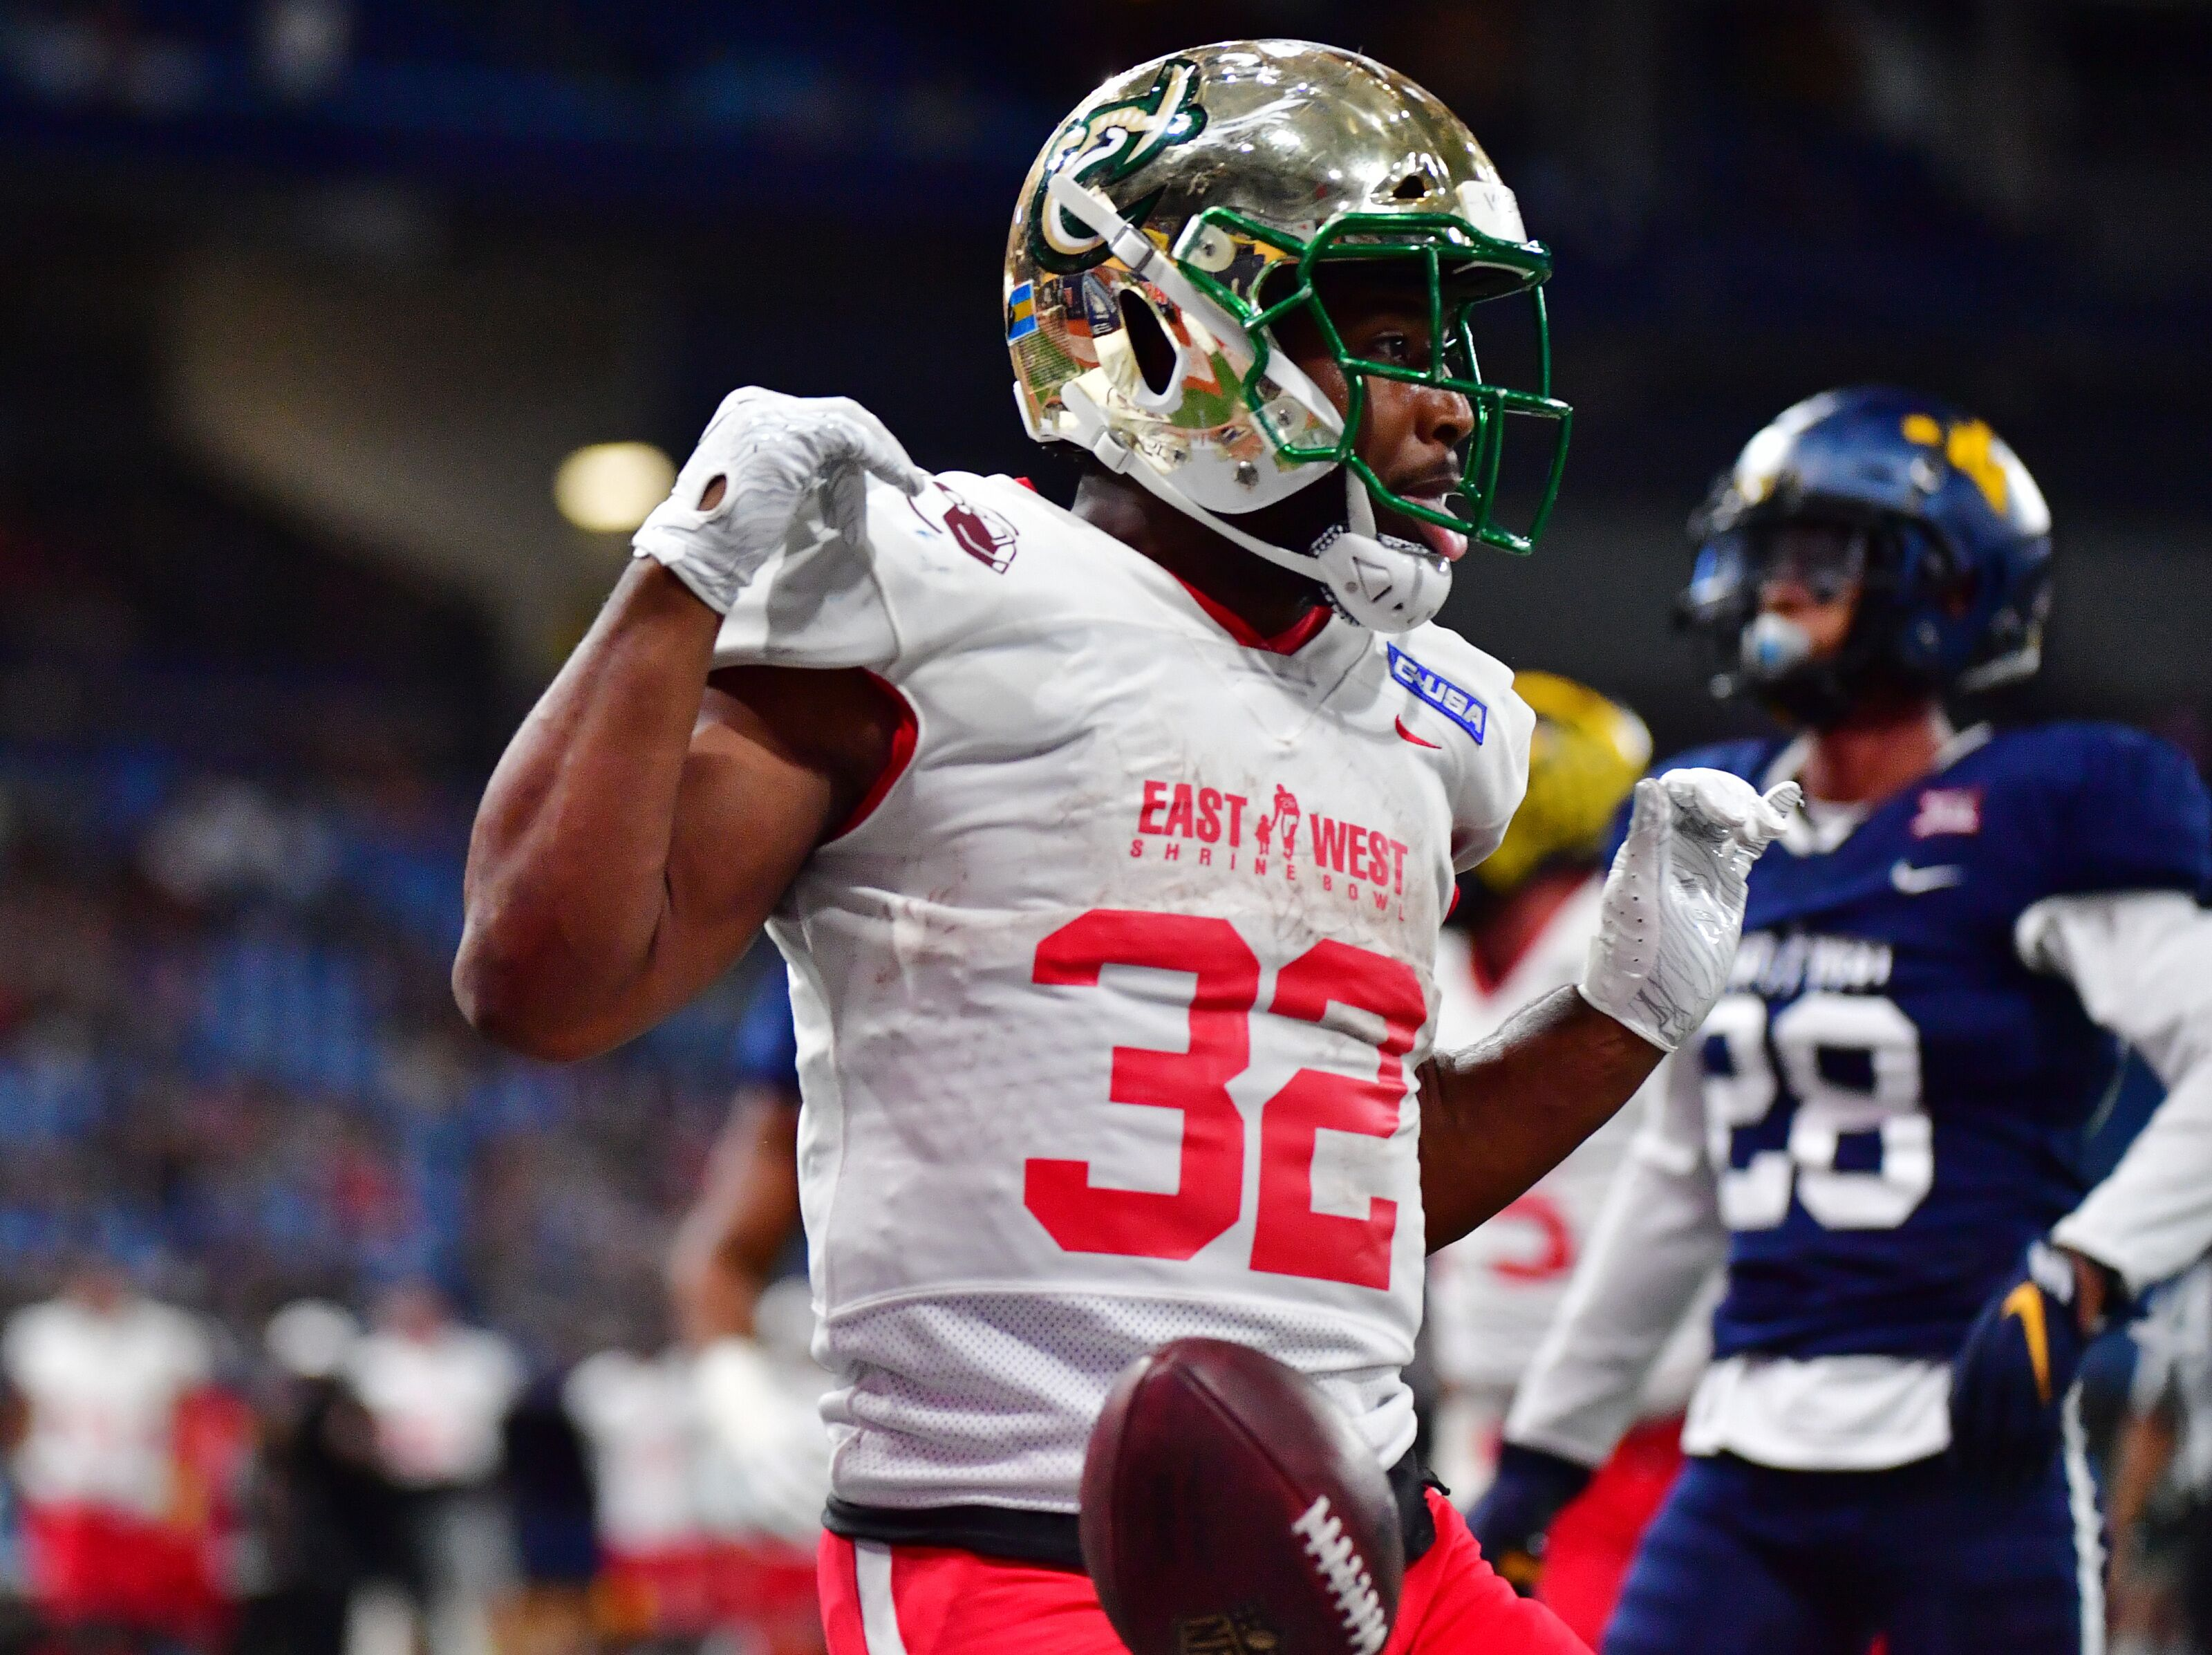 East-West Shrine game: 5 2020 NFL Draft prospects 49ers could target